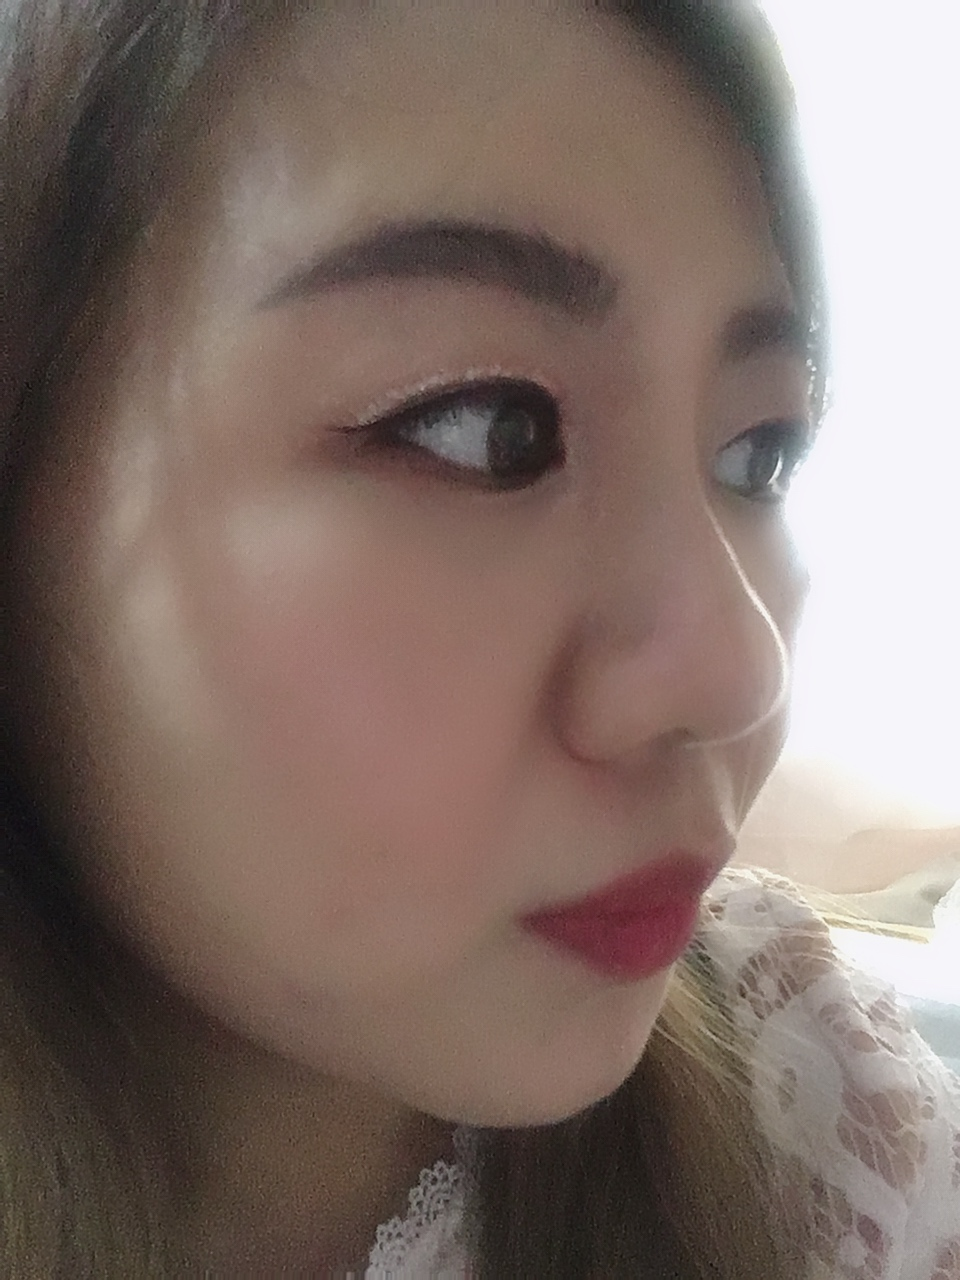 Jessica Ang |: Review: SL Clinic Singapore | Nose Threadlift Treatment